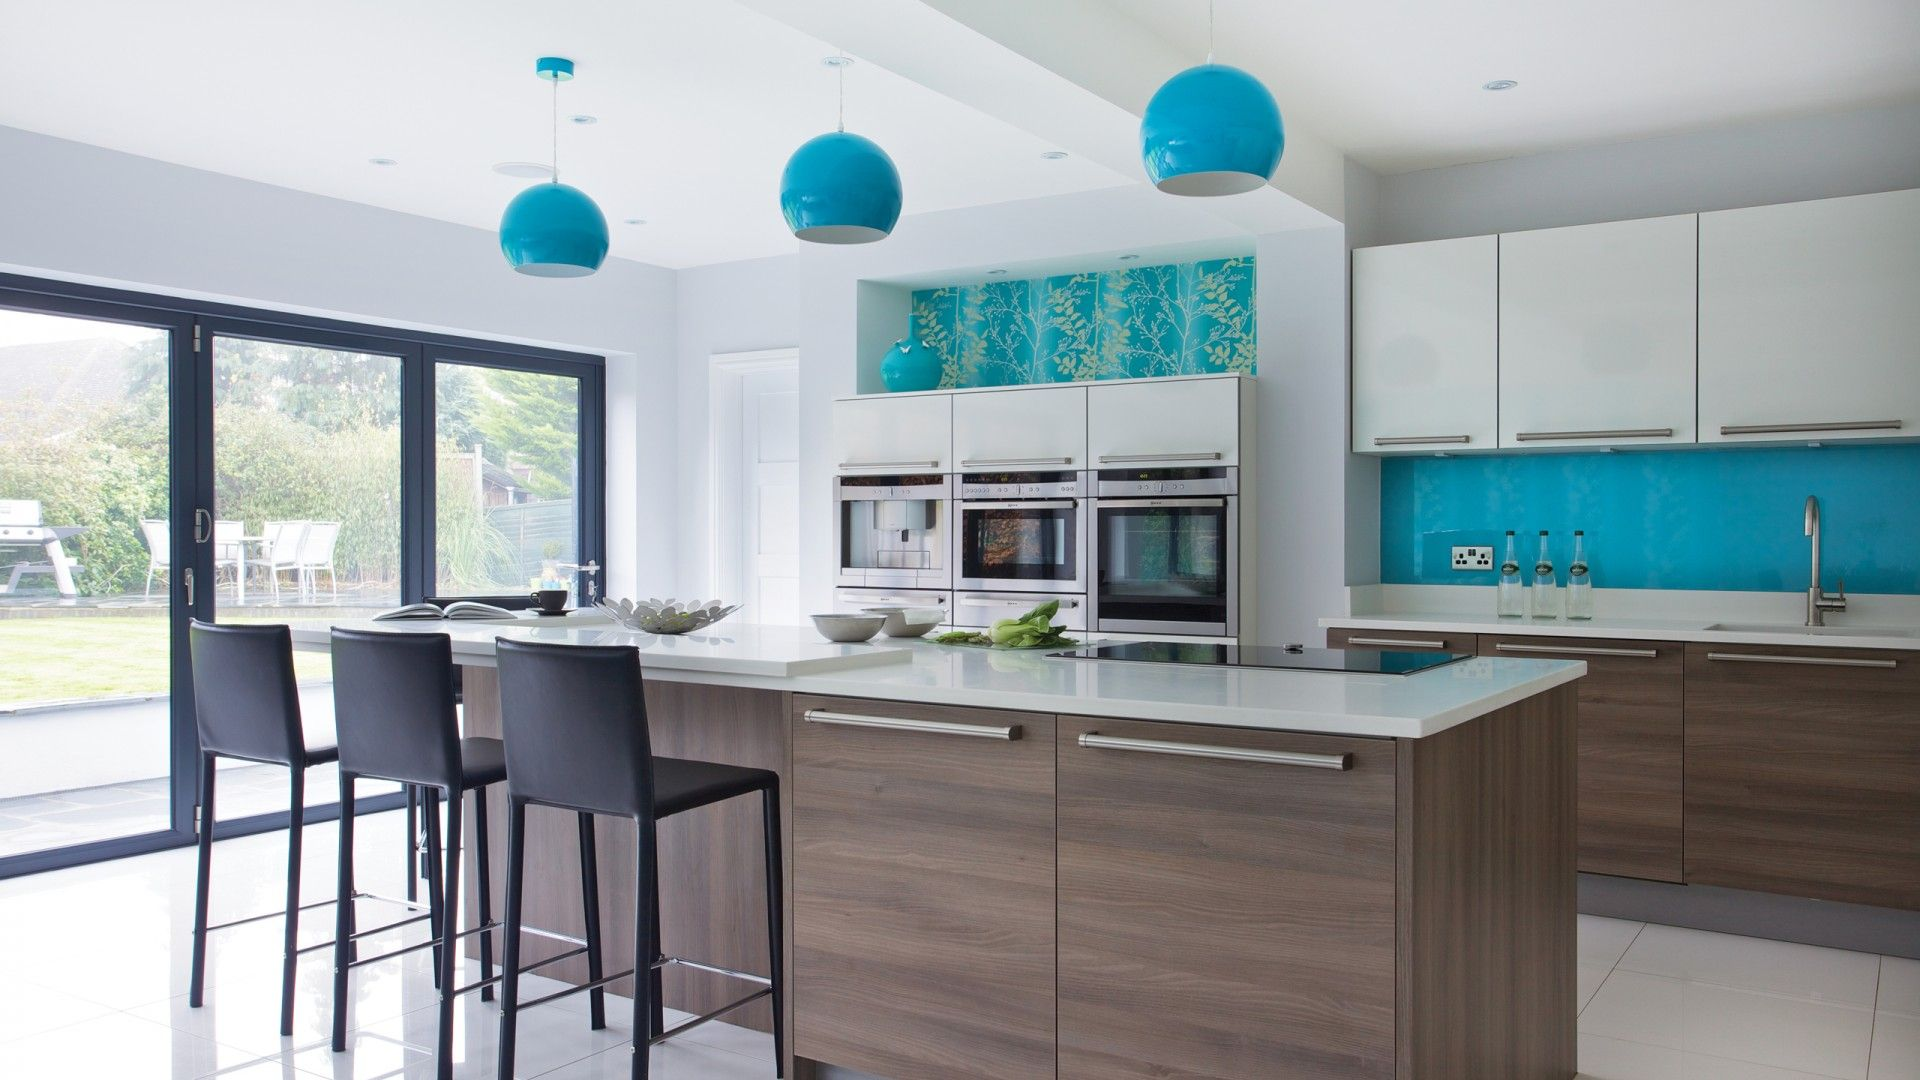 Glossy modern kitchen with bright blue splashback | Kitchen ...